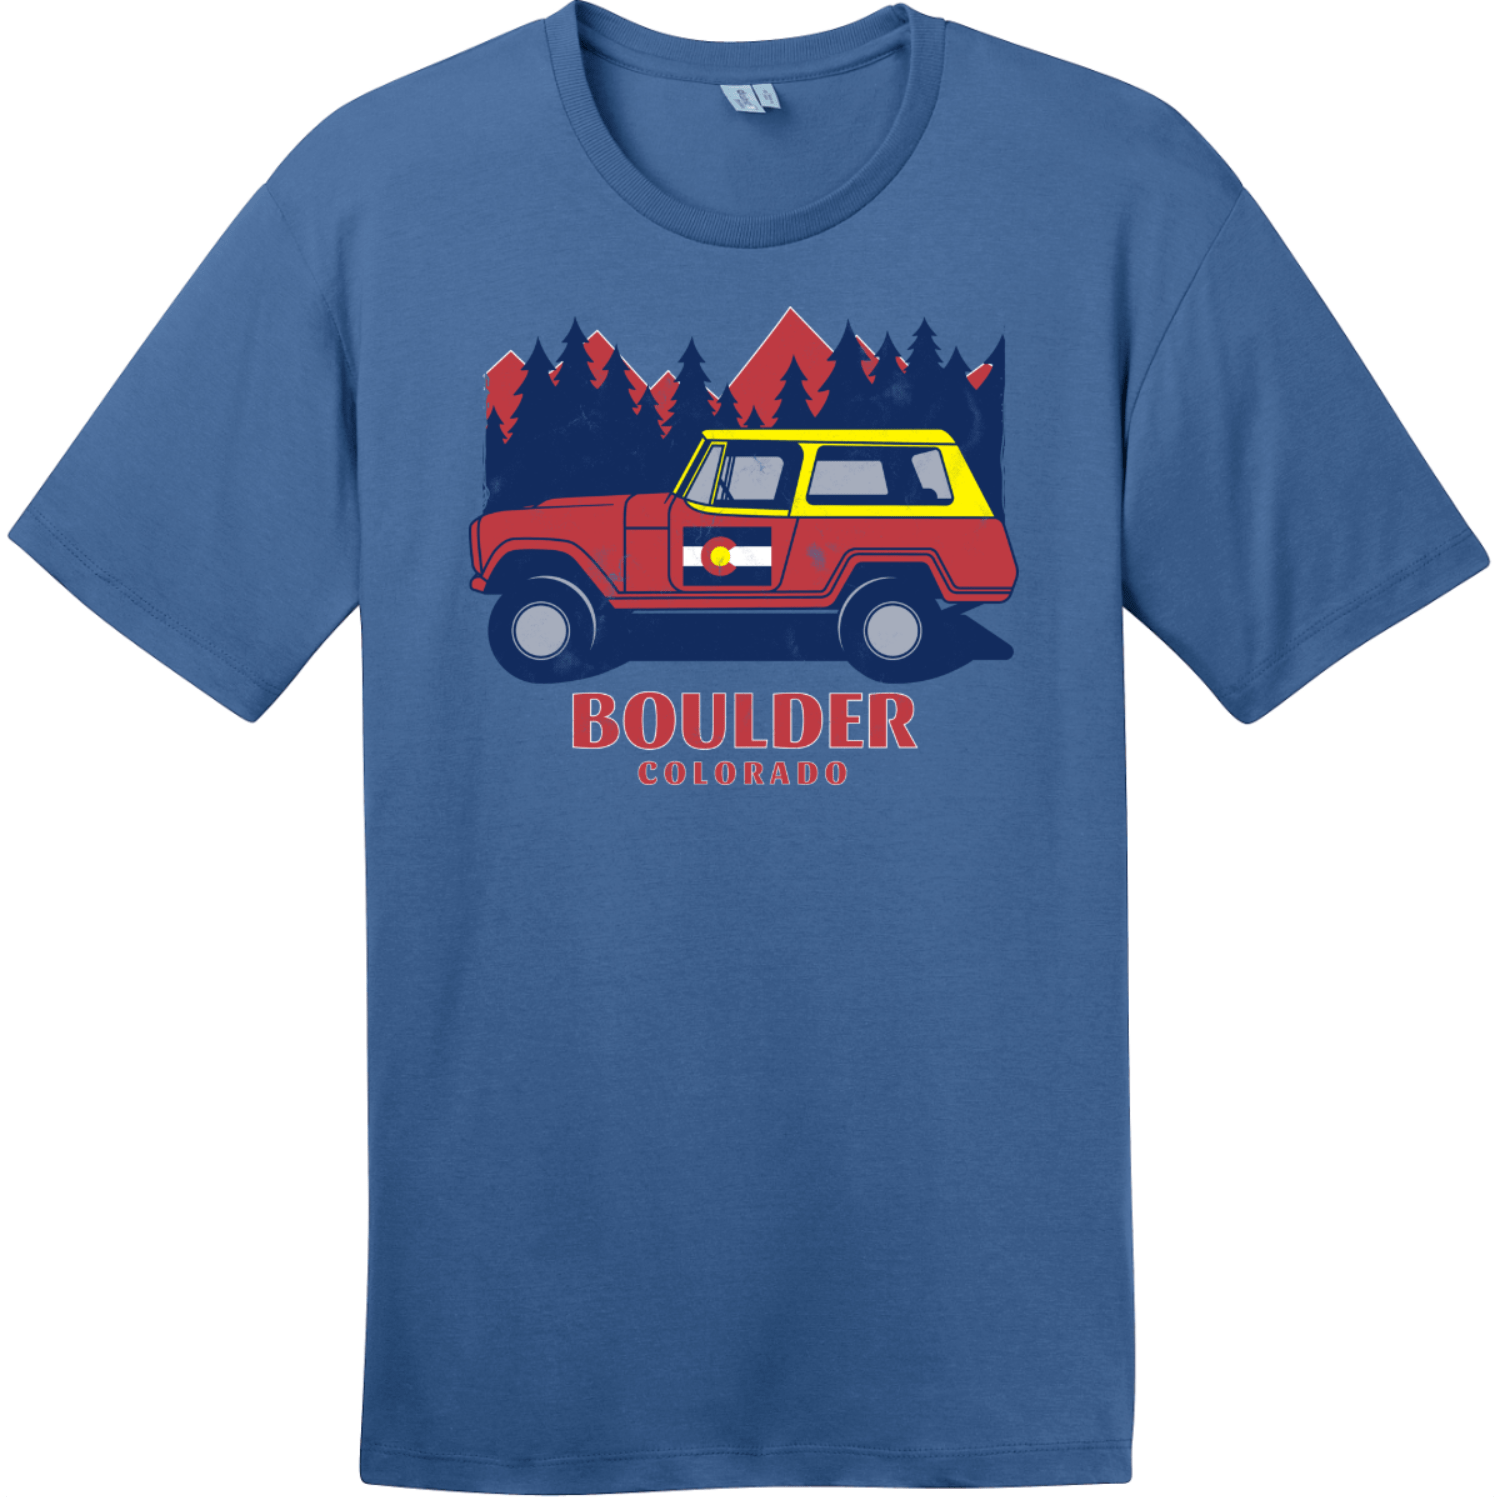 Boulder Colorado Vintage T Shirt Maritime Blue District Perfect Weight Tee DT104